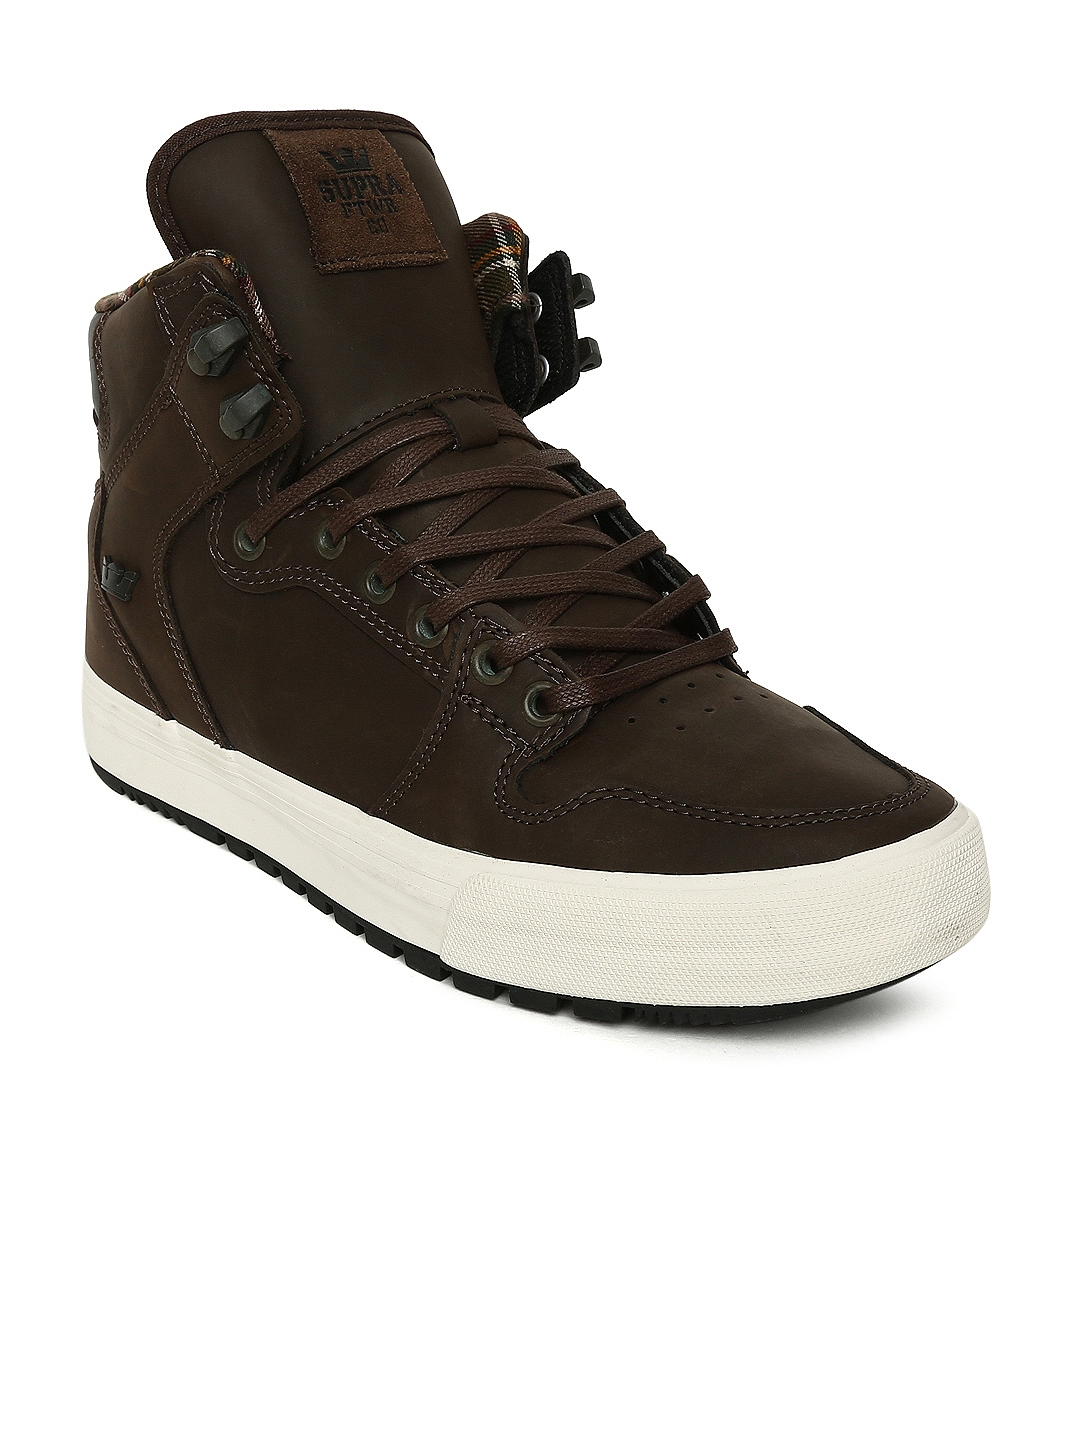 f50bab608e Buy Supra Men Brown Solid Leather Vaider CW High Top Sneakers ...